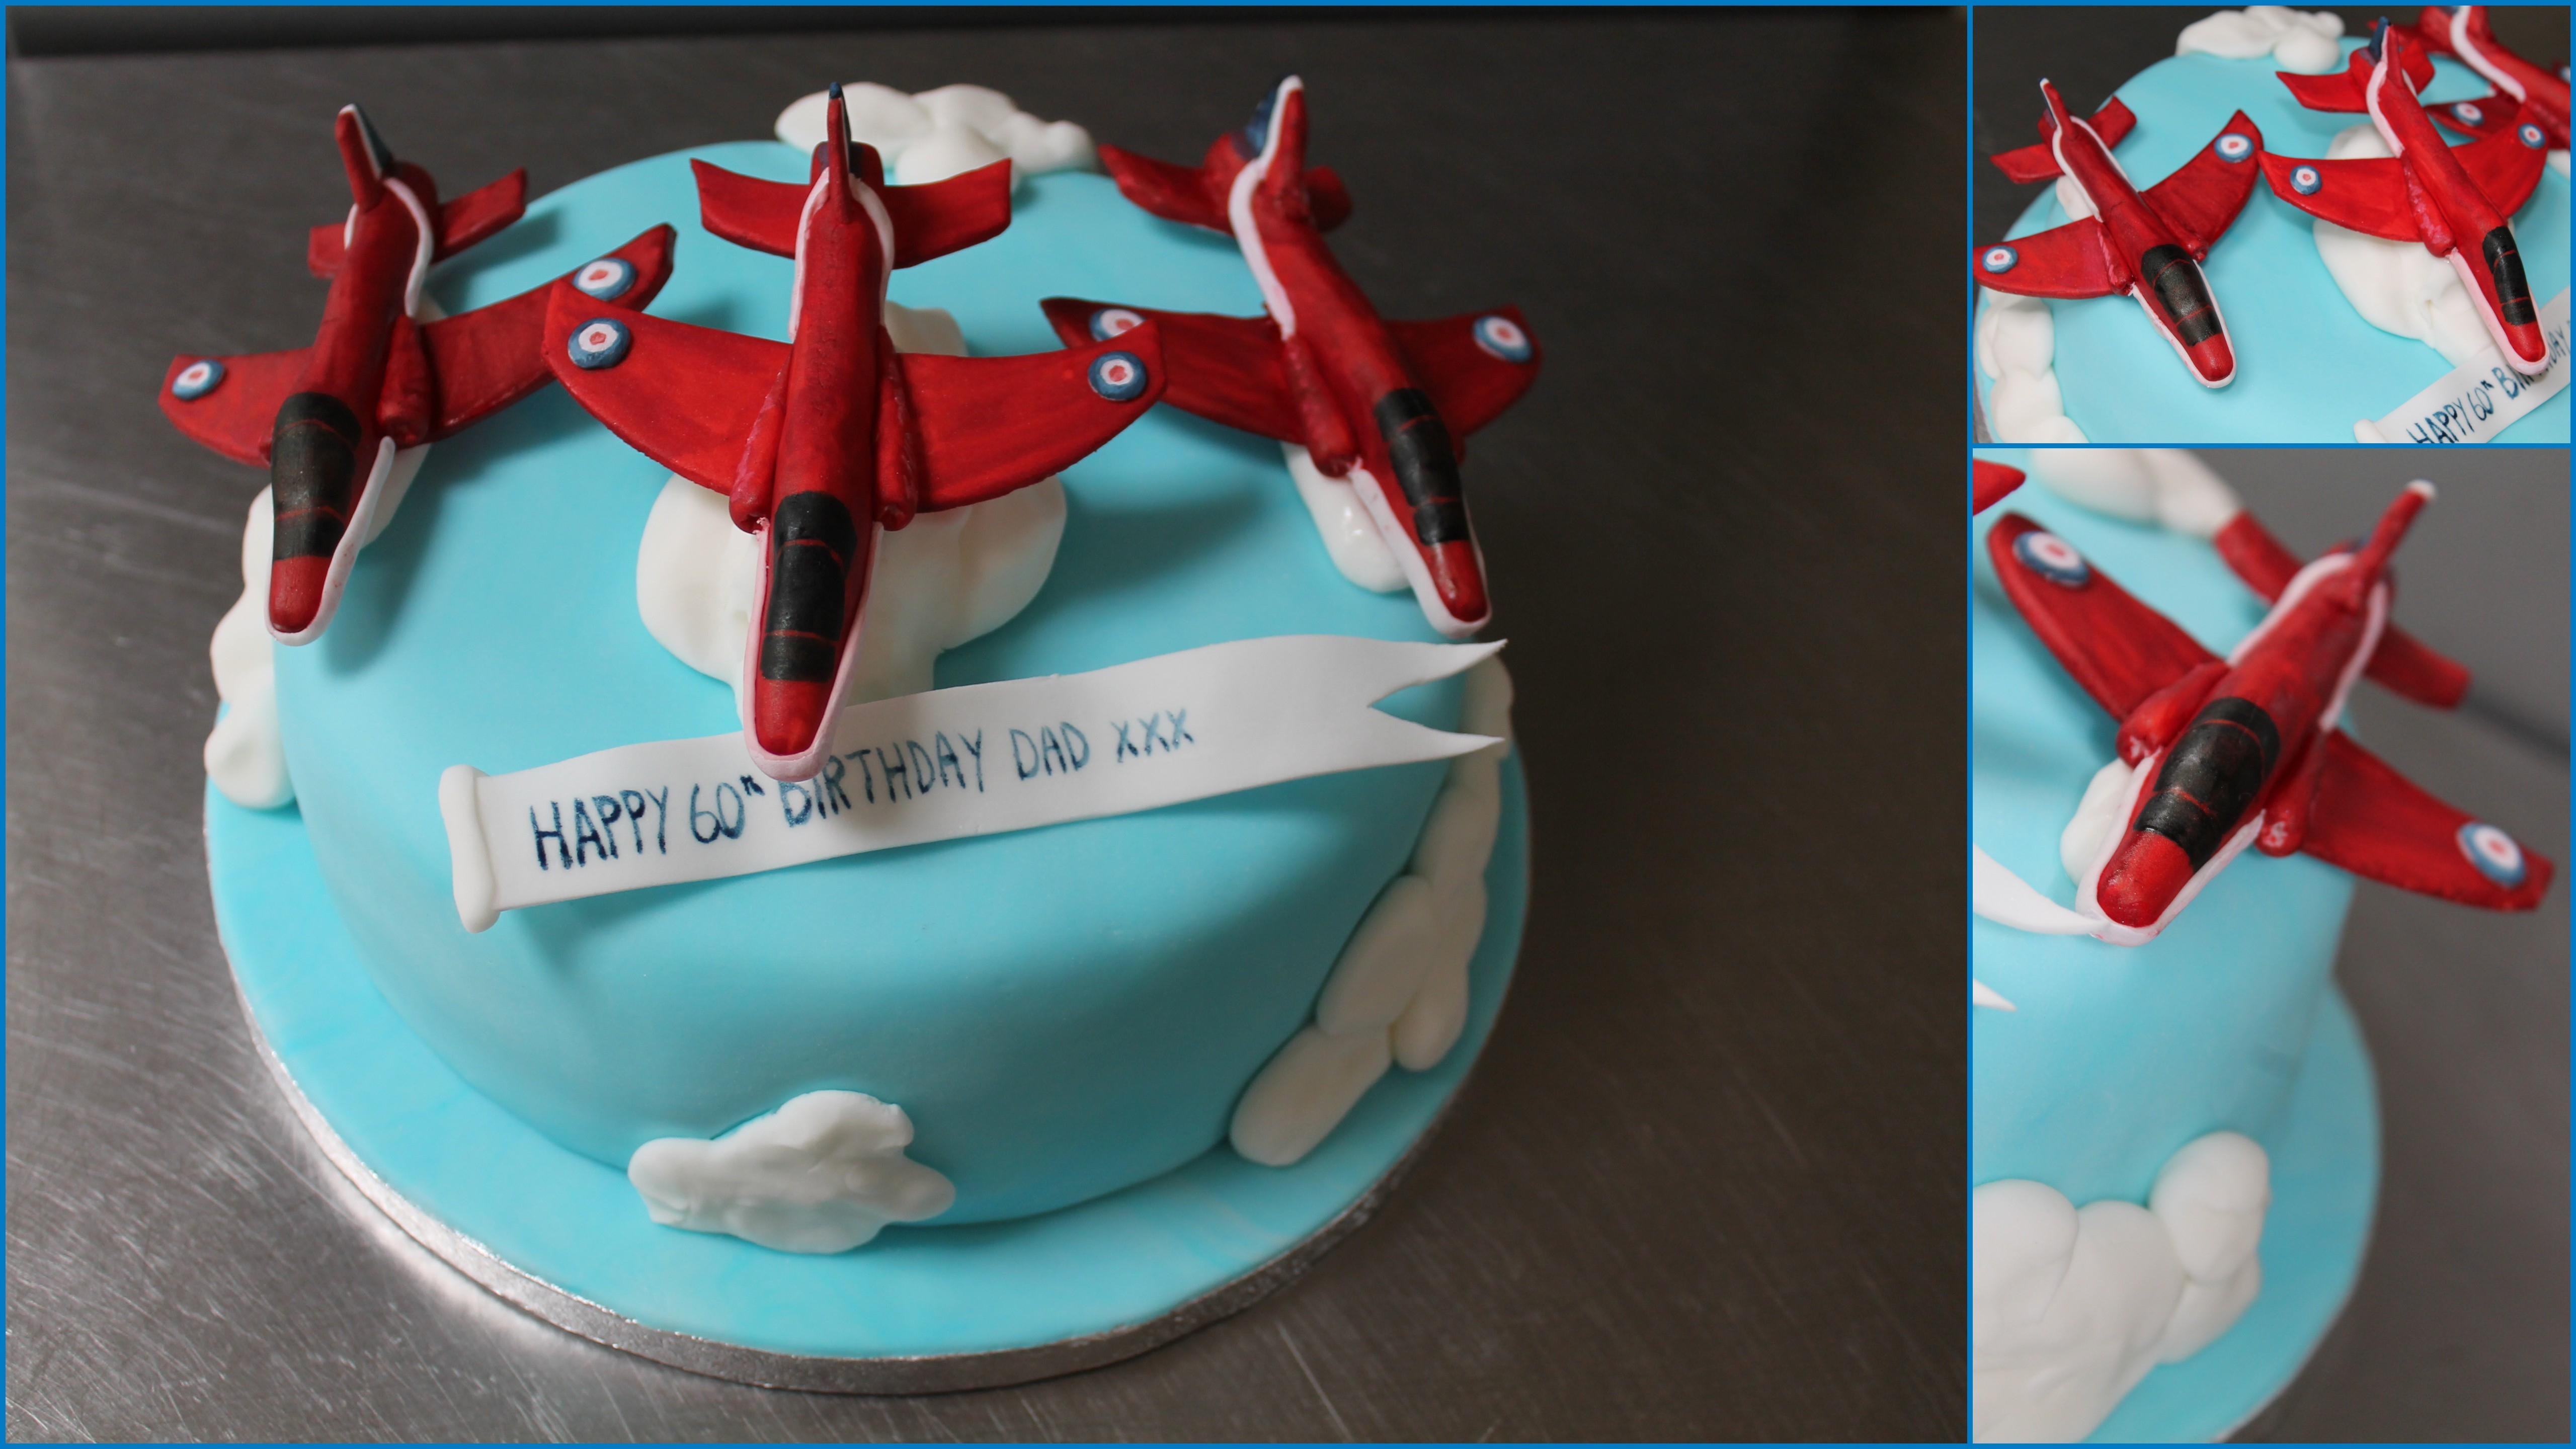 The Red Arrows Or well just three of them ... made from sugar paste